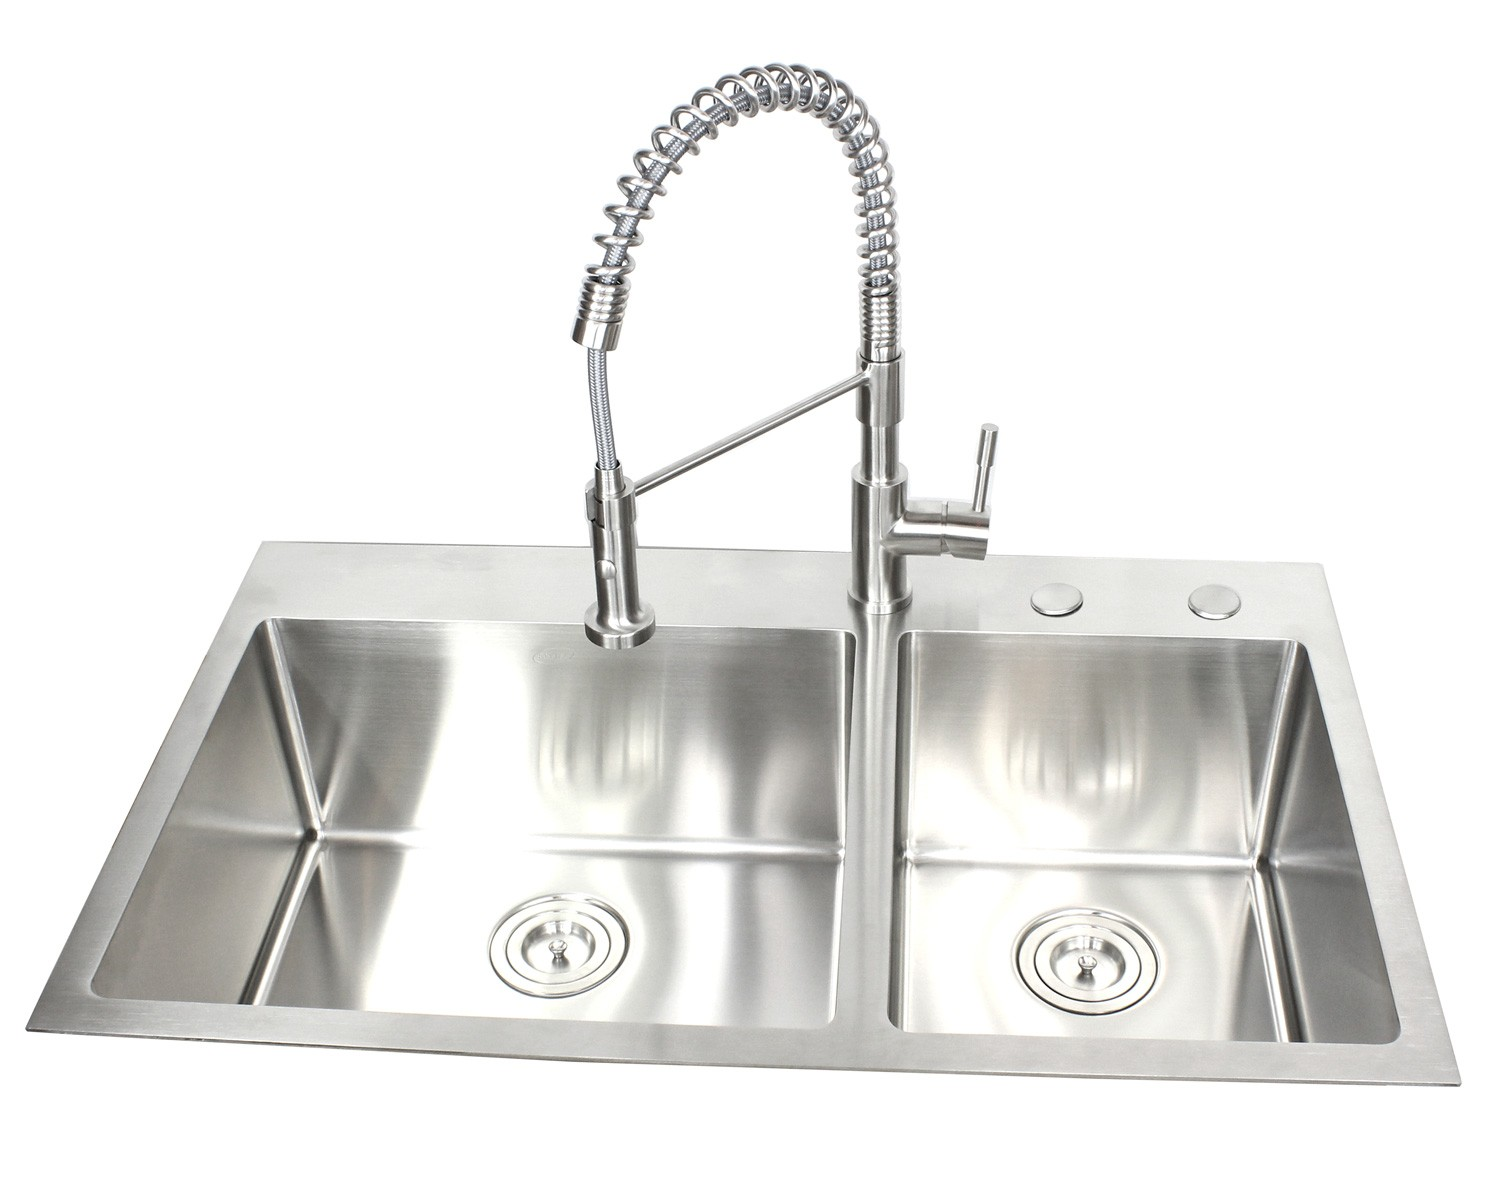 36 Inch Top-Mount / Drop-In Stainless Steel 60/40 Double Bowl Kitchen Sink  15mm Radius Design